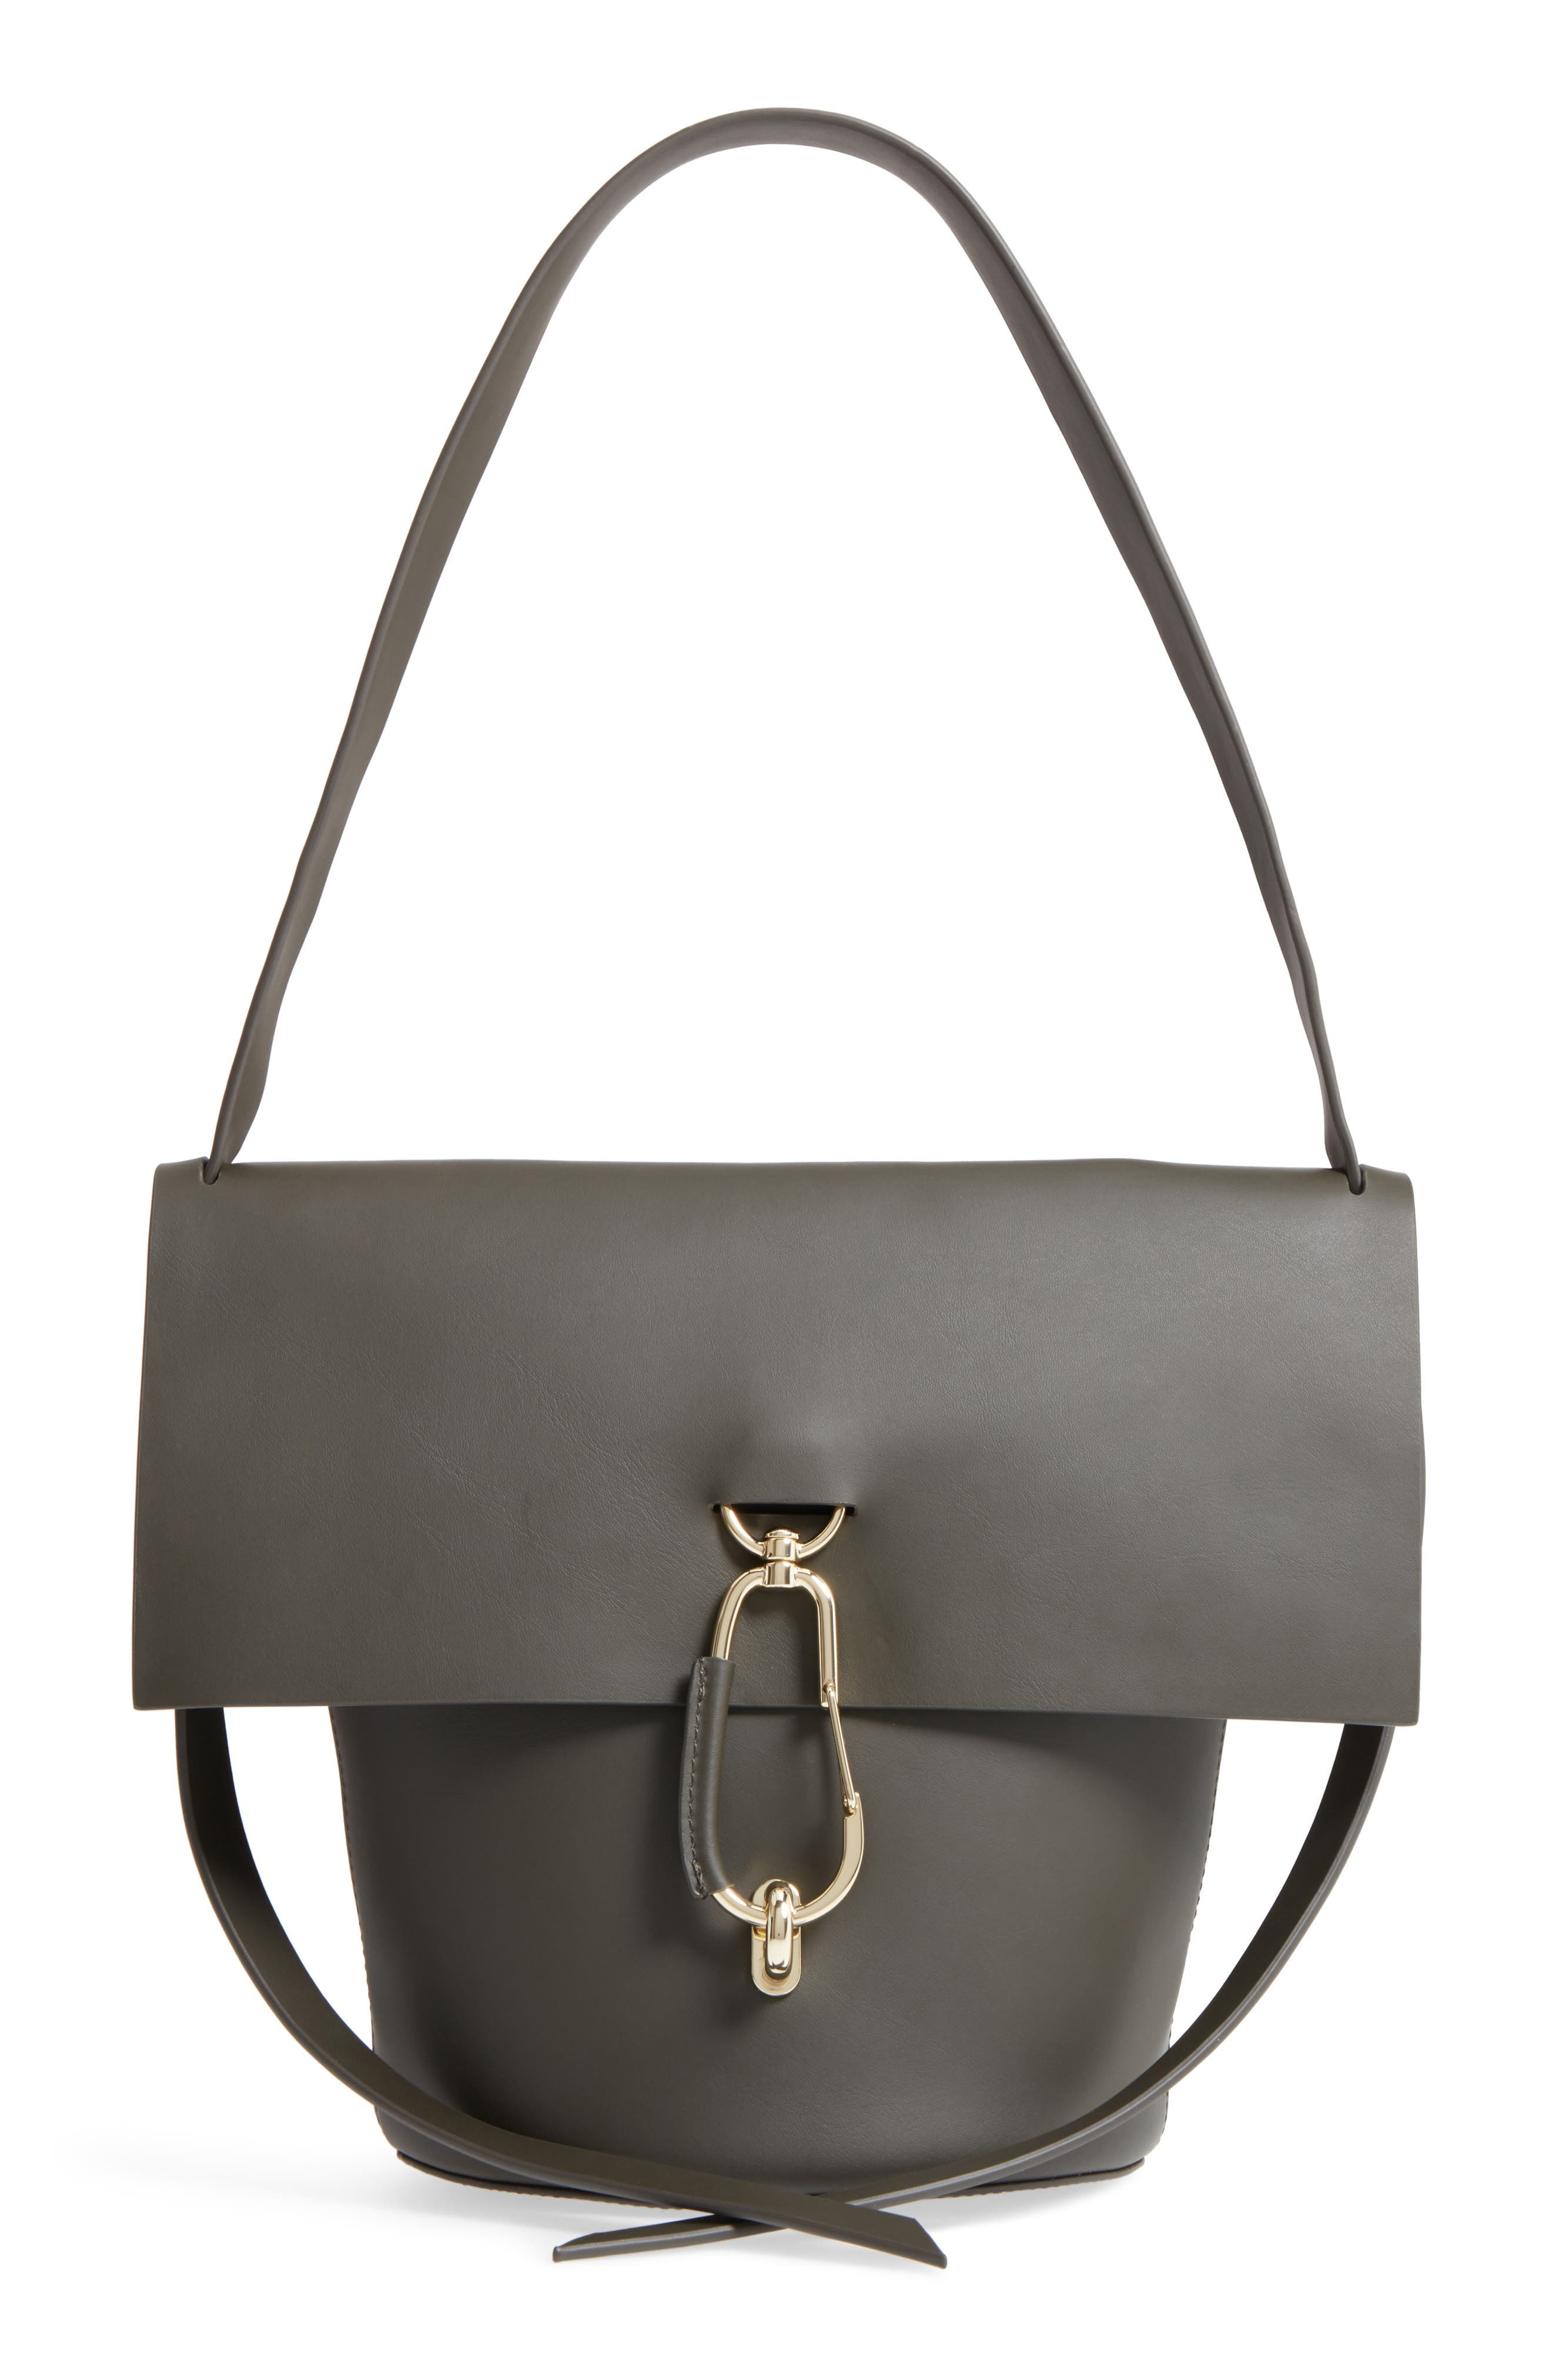 ZAC Zac Posen Belay Leather Bucket Bag